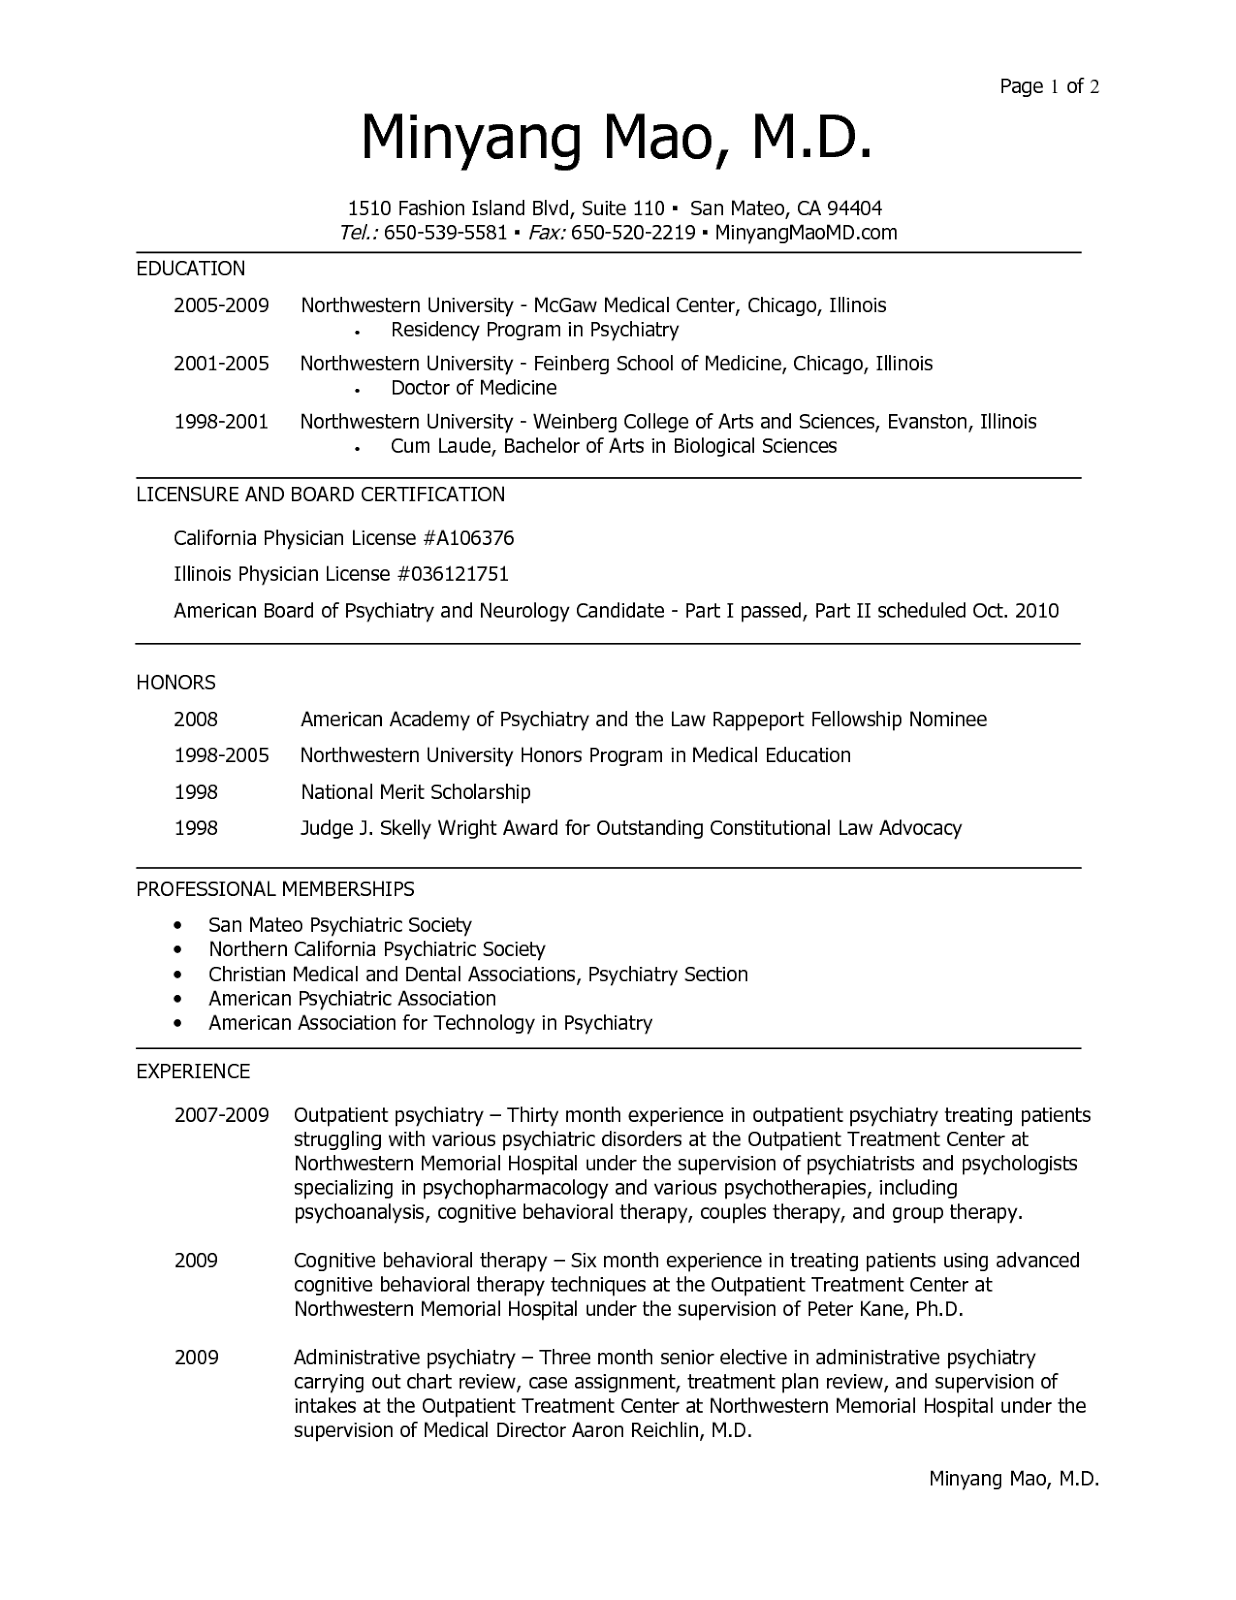 Resume Objectives For Healthcare Professional